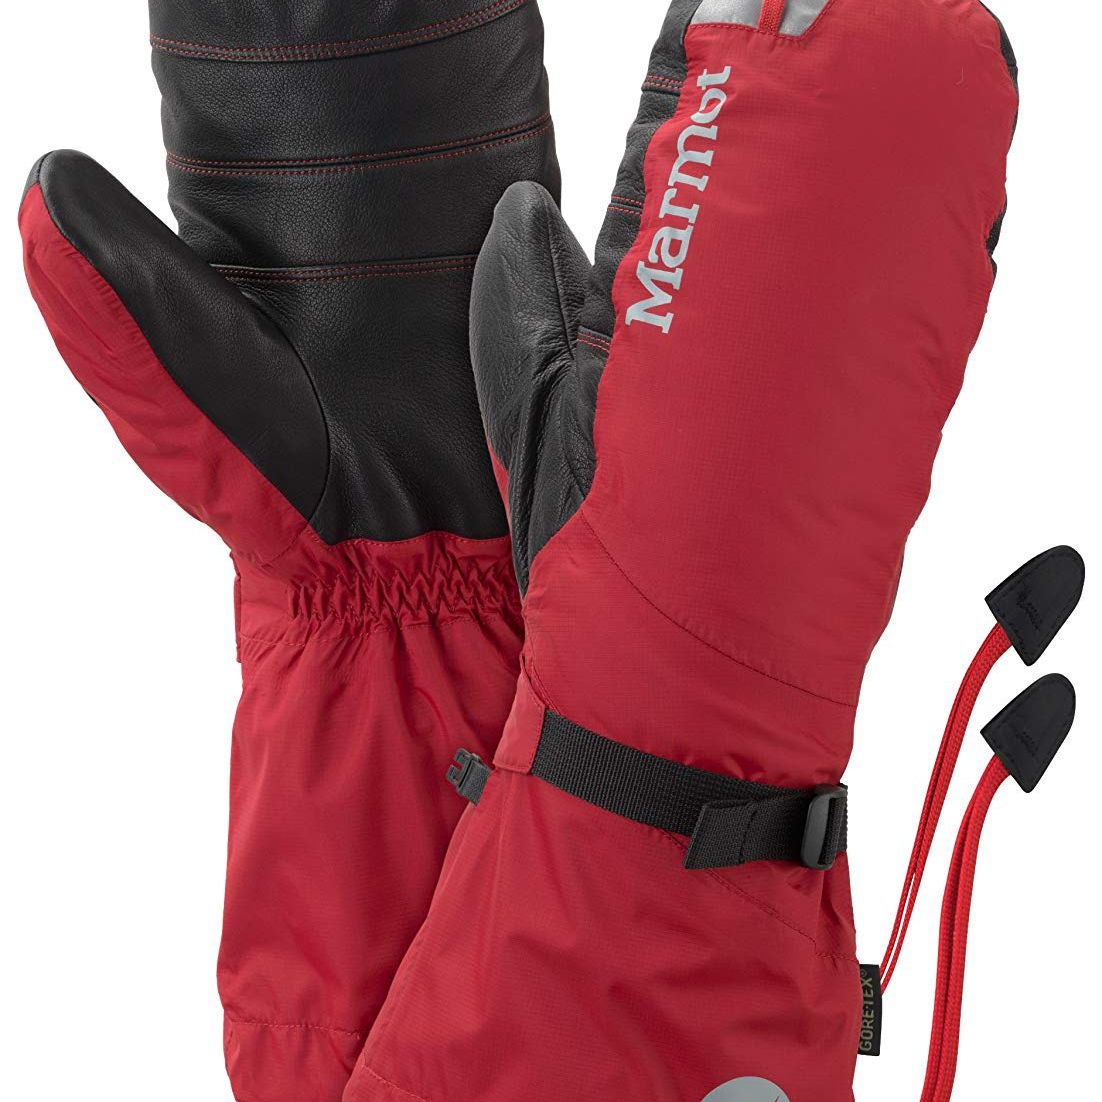 4c5246440b6d The 8 Best Mountaineering Gloves of 2019